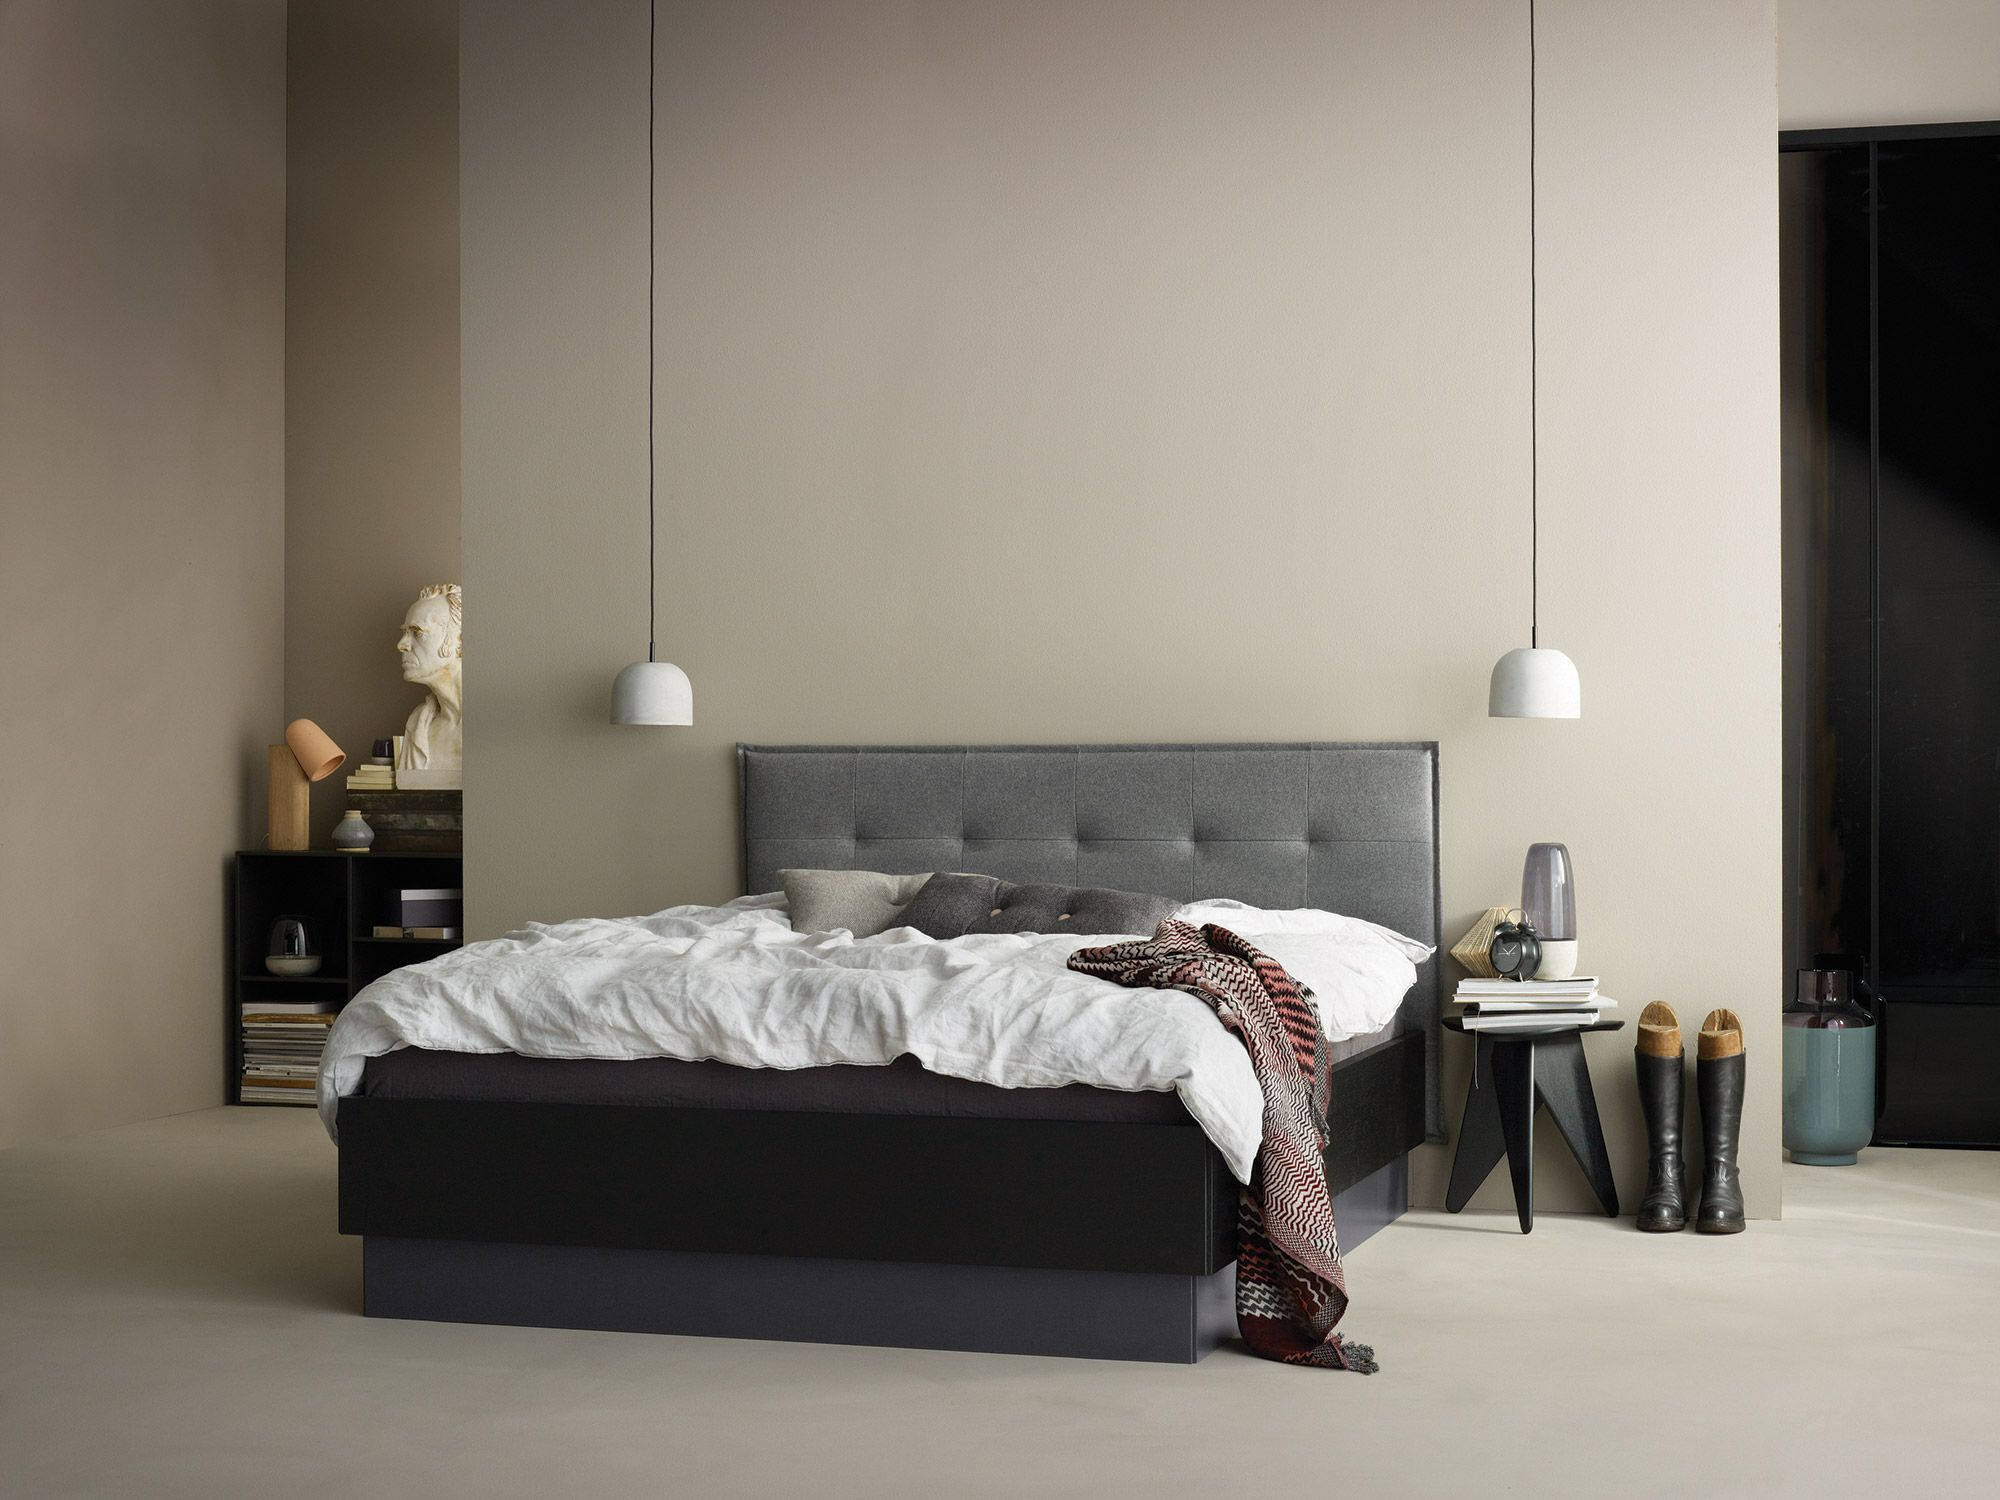 Morten Georgsen of BoConcept knows how important sleep is in daily